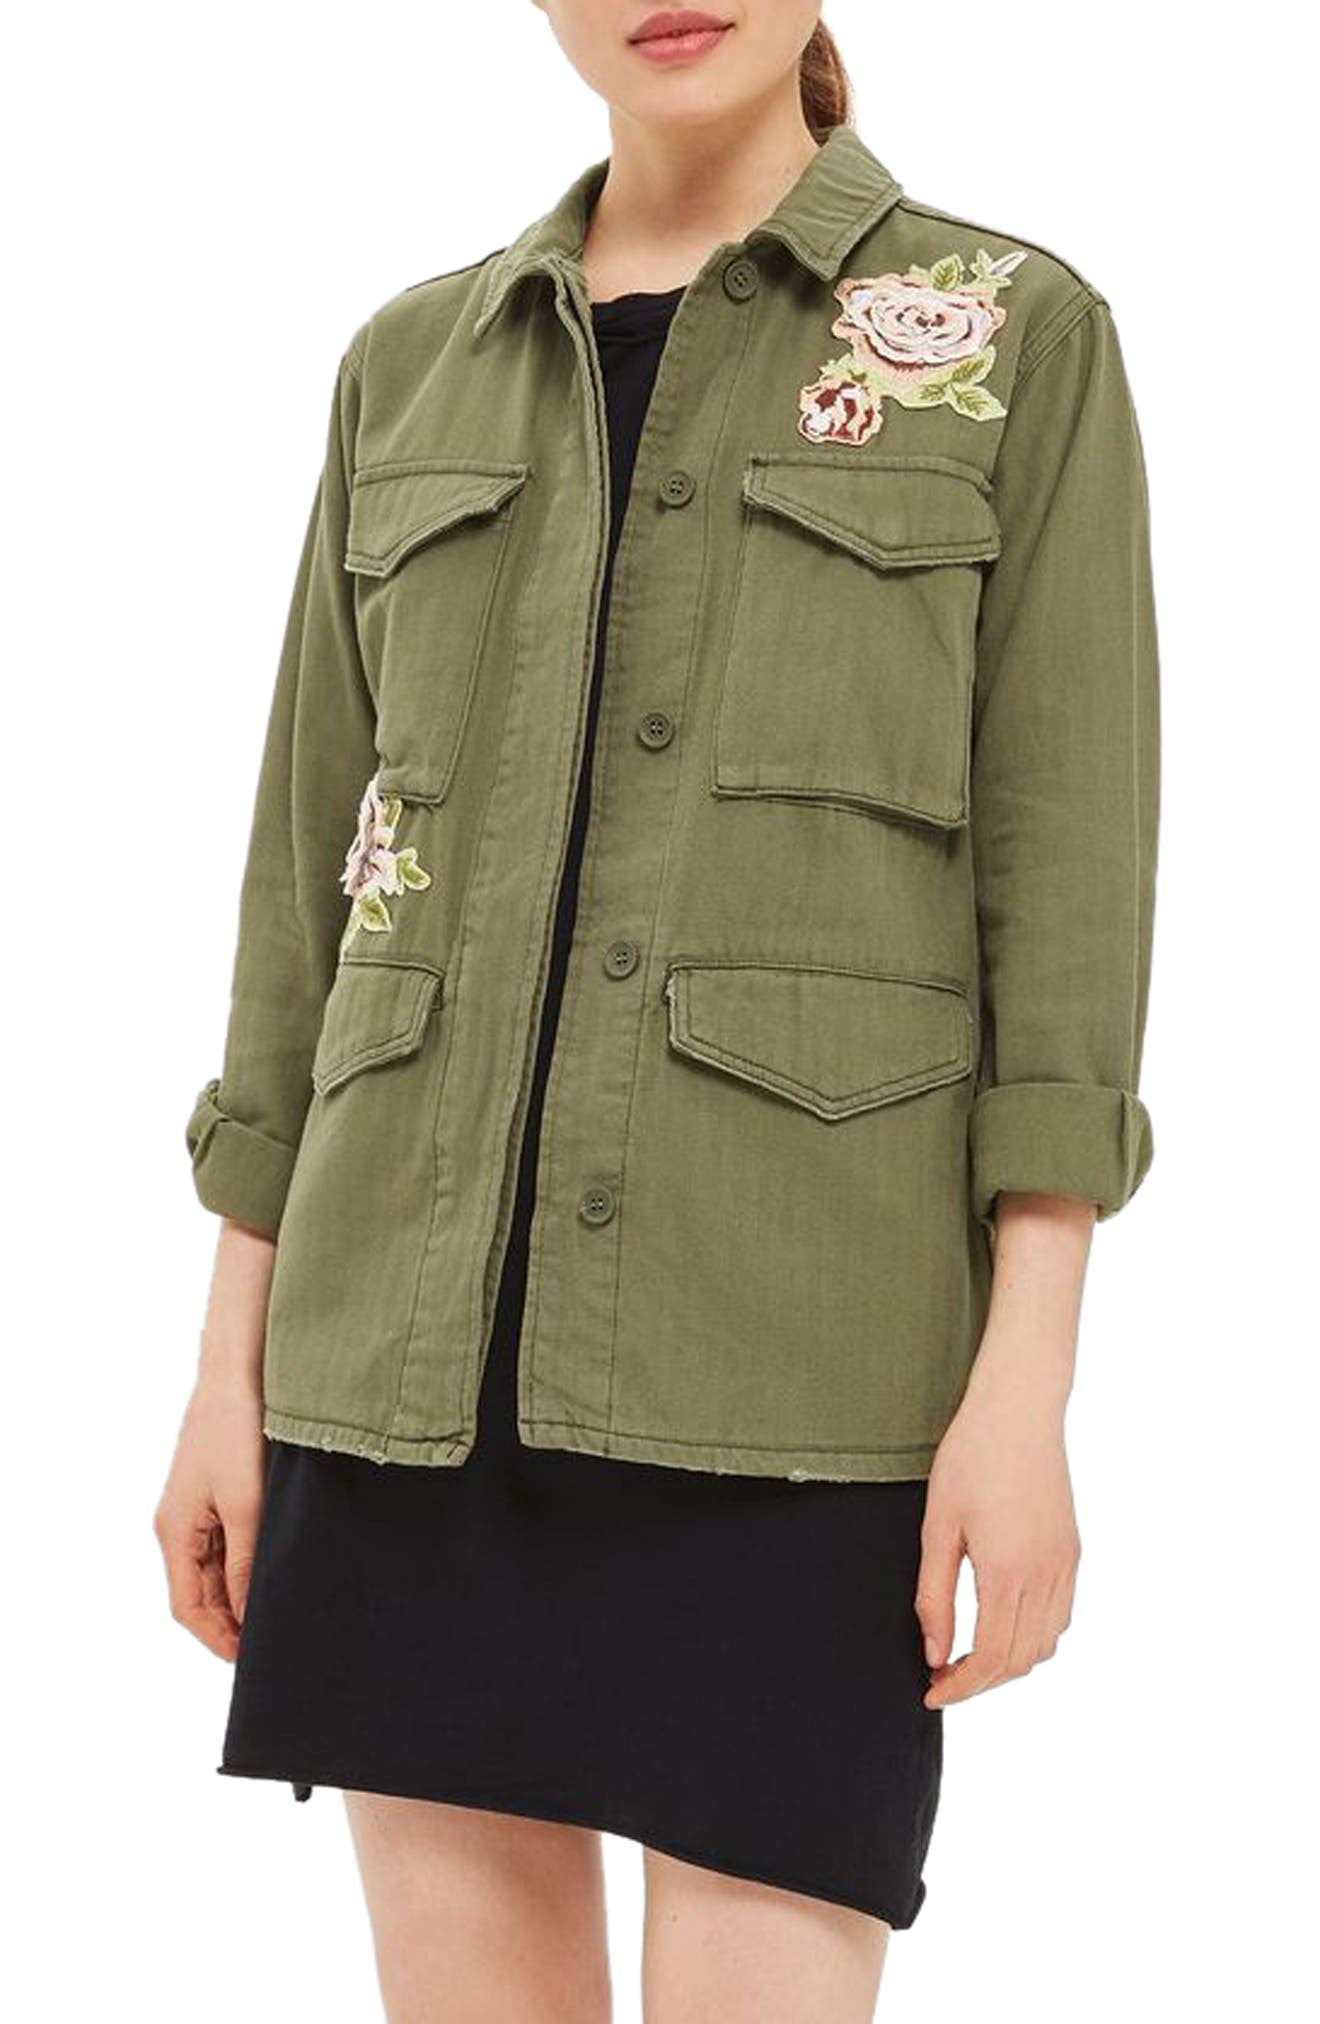 Topshop Ethan Rose Appliqué Shirt Jacket